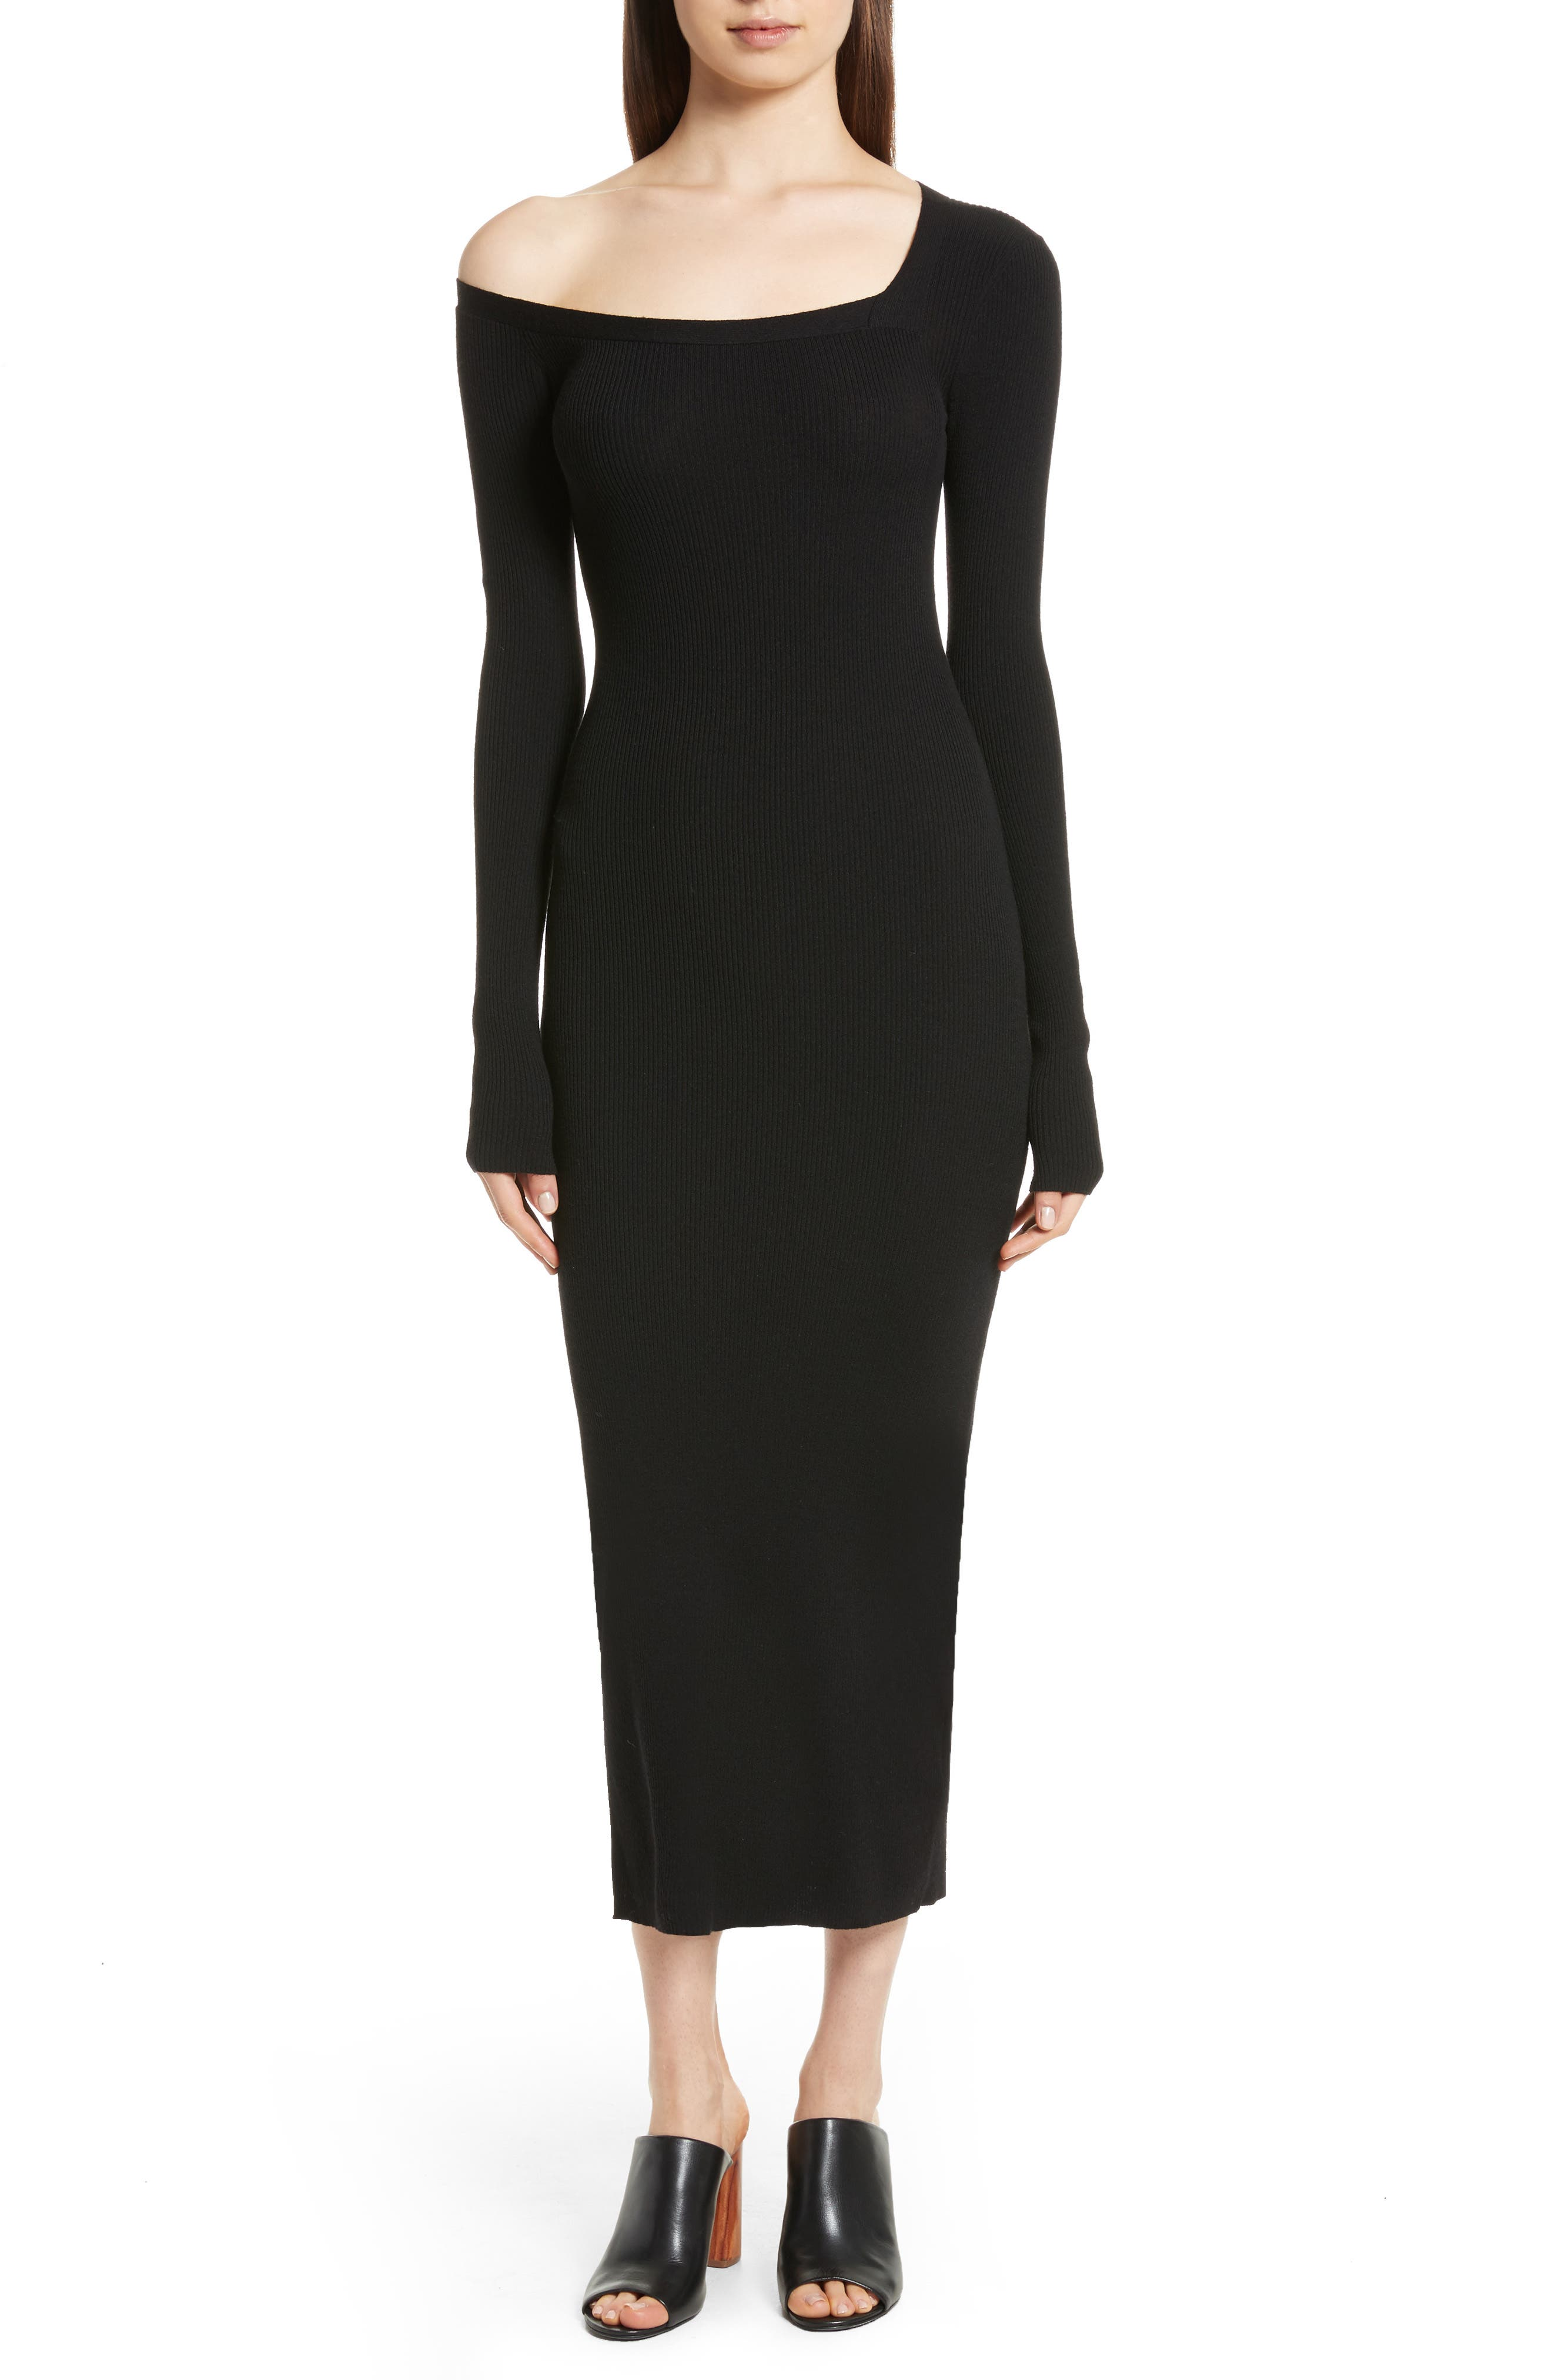 A.L.C. Brynn Merino Wool Blend Midi Dress